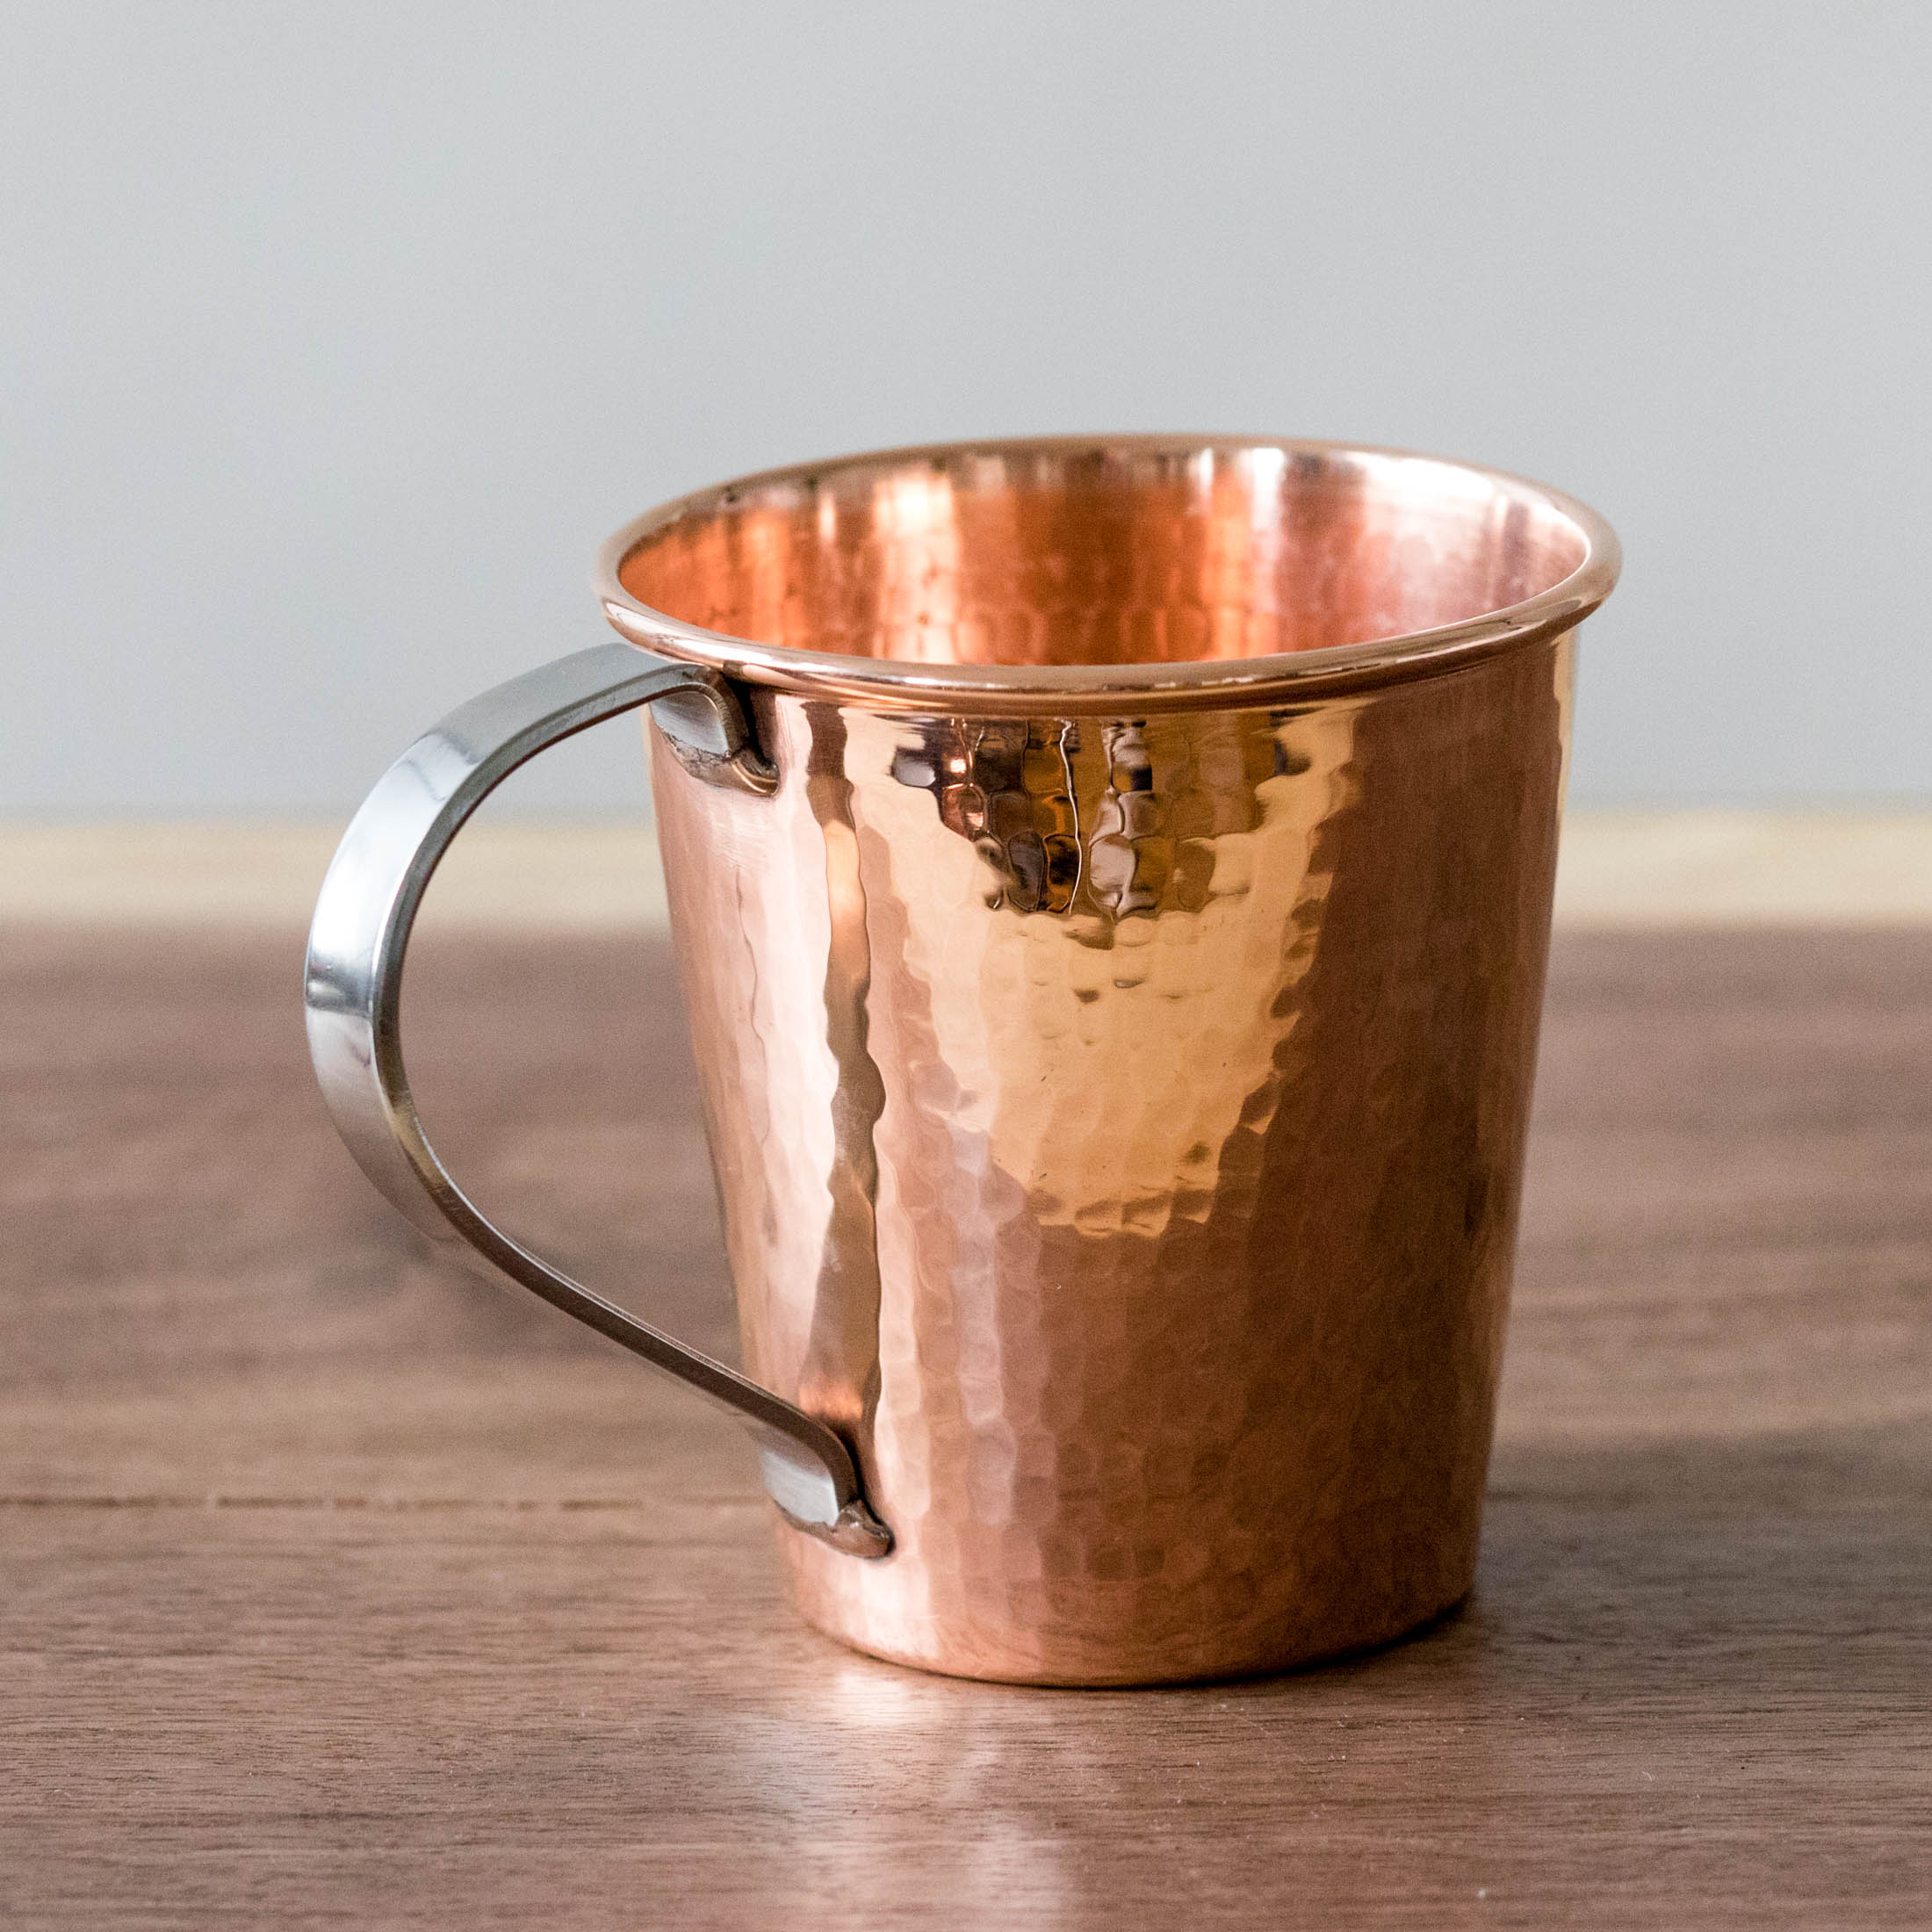 Hammered Copper Moscow Mule Mug with Stainless Steel Handle by Sertodo Copper (18 ounce)